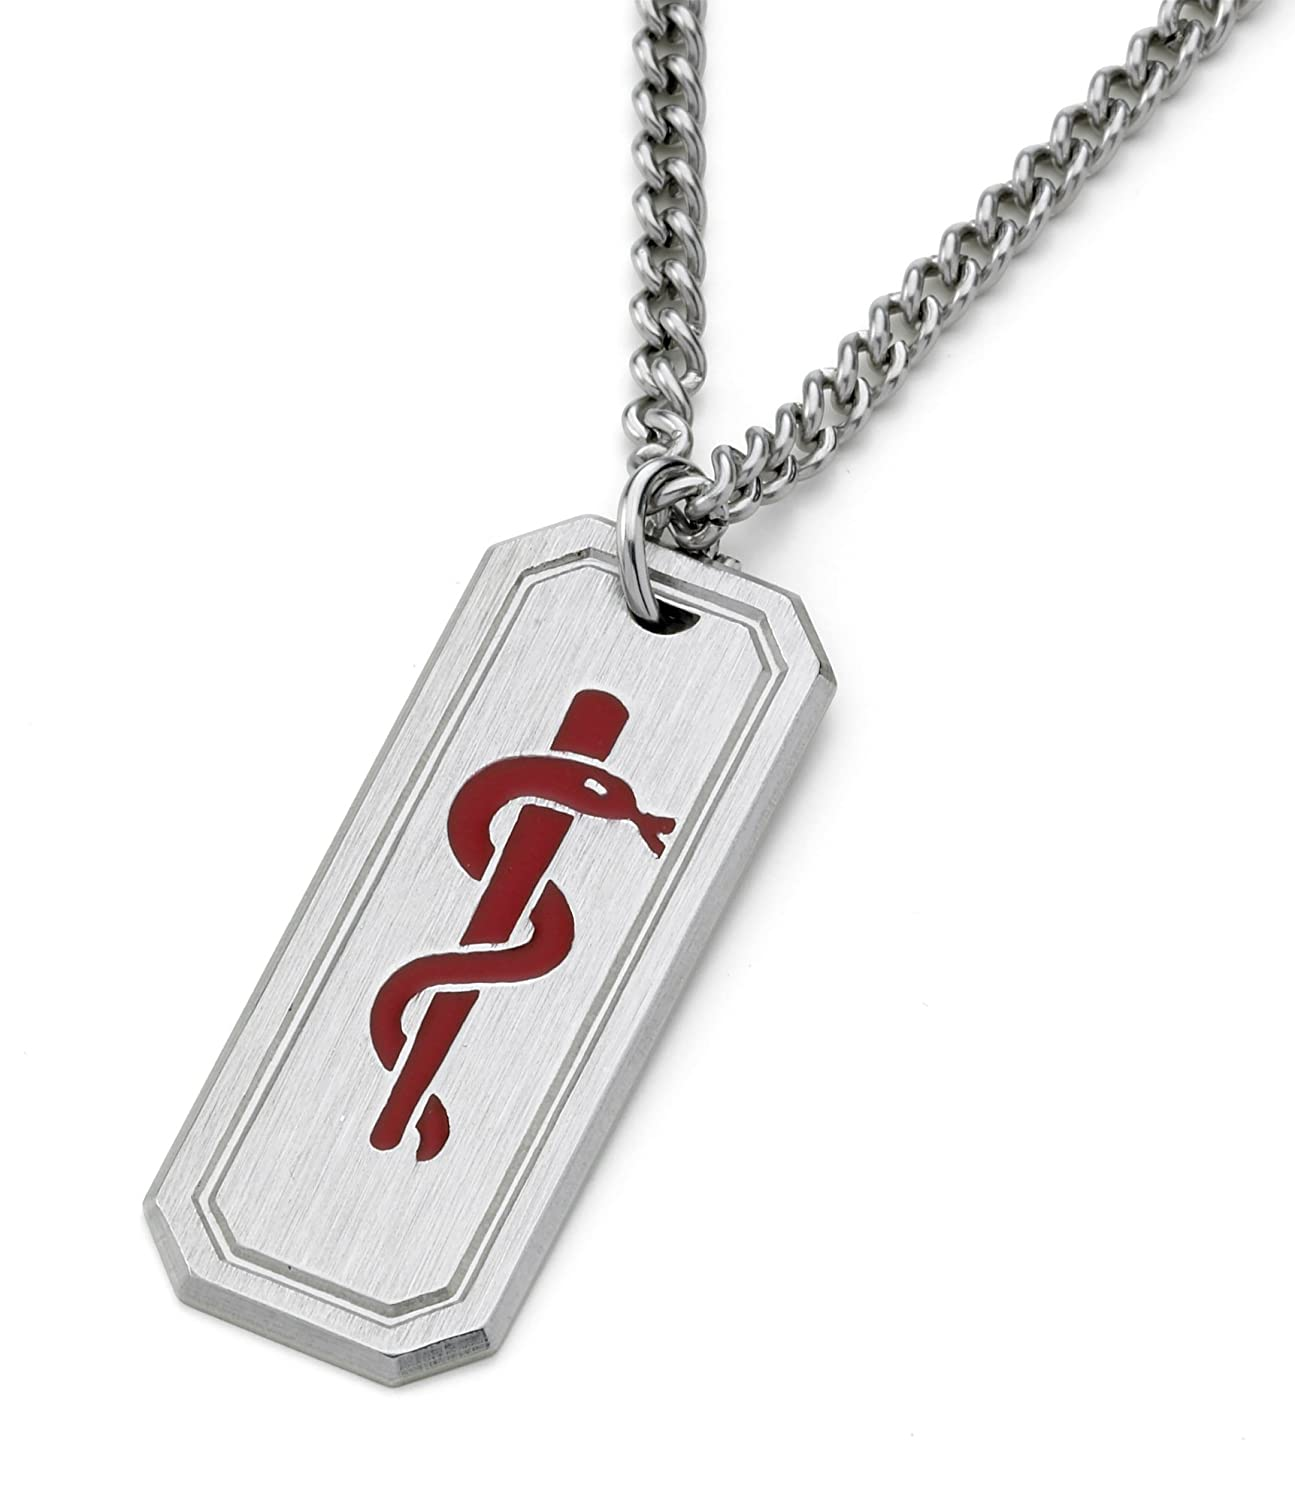 Warfarin user medi tag medical id alert pendant necklace warfarin user medi tag medical id alert pendant necklace stainless steel amazon health personal care mozeypictures Choice Image